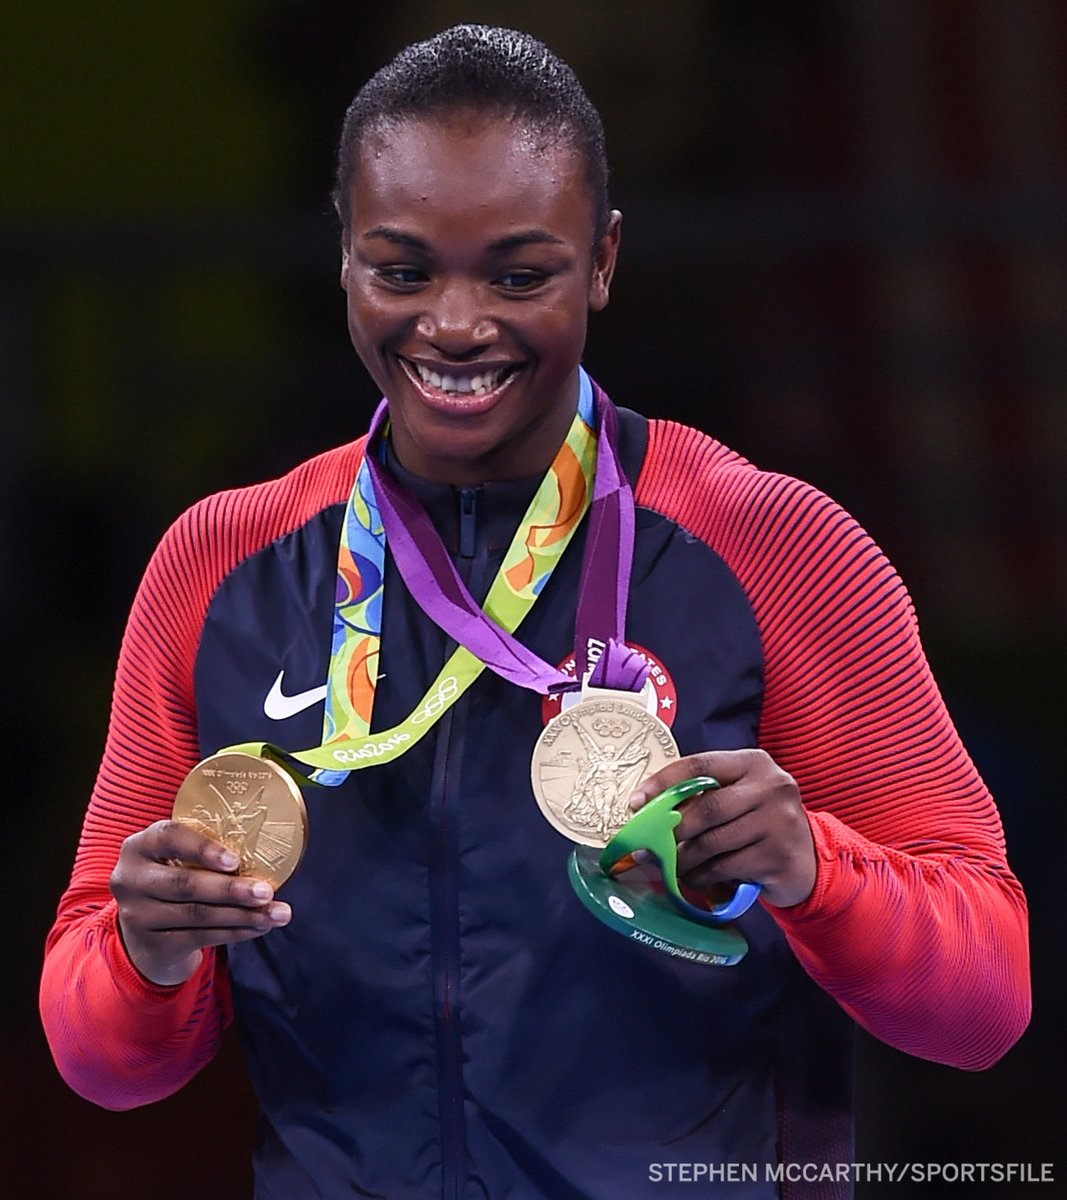 Between newly-signed @Claressashields and women's lightweight champion @KaylaH, the @ProFightLeague roster now touts four Olympic gold medal wins 🥇🥇🥇🥇 https://t.co/Cy2ikFqpVN